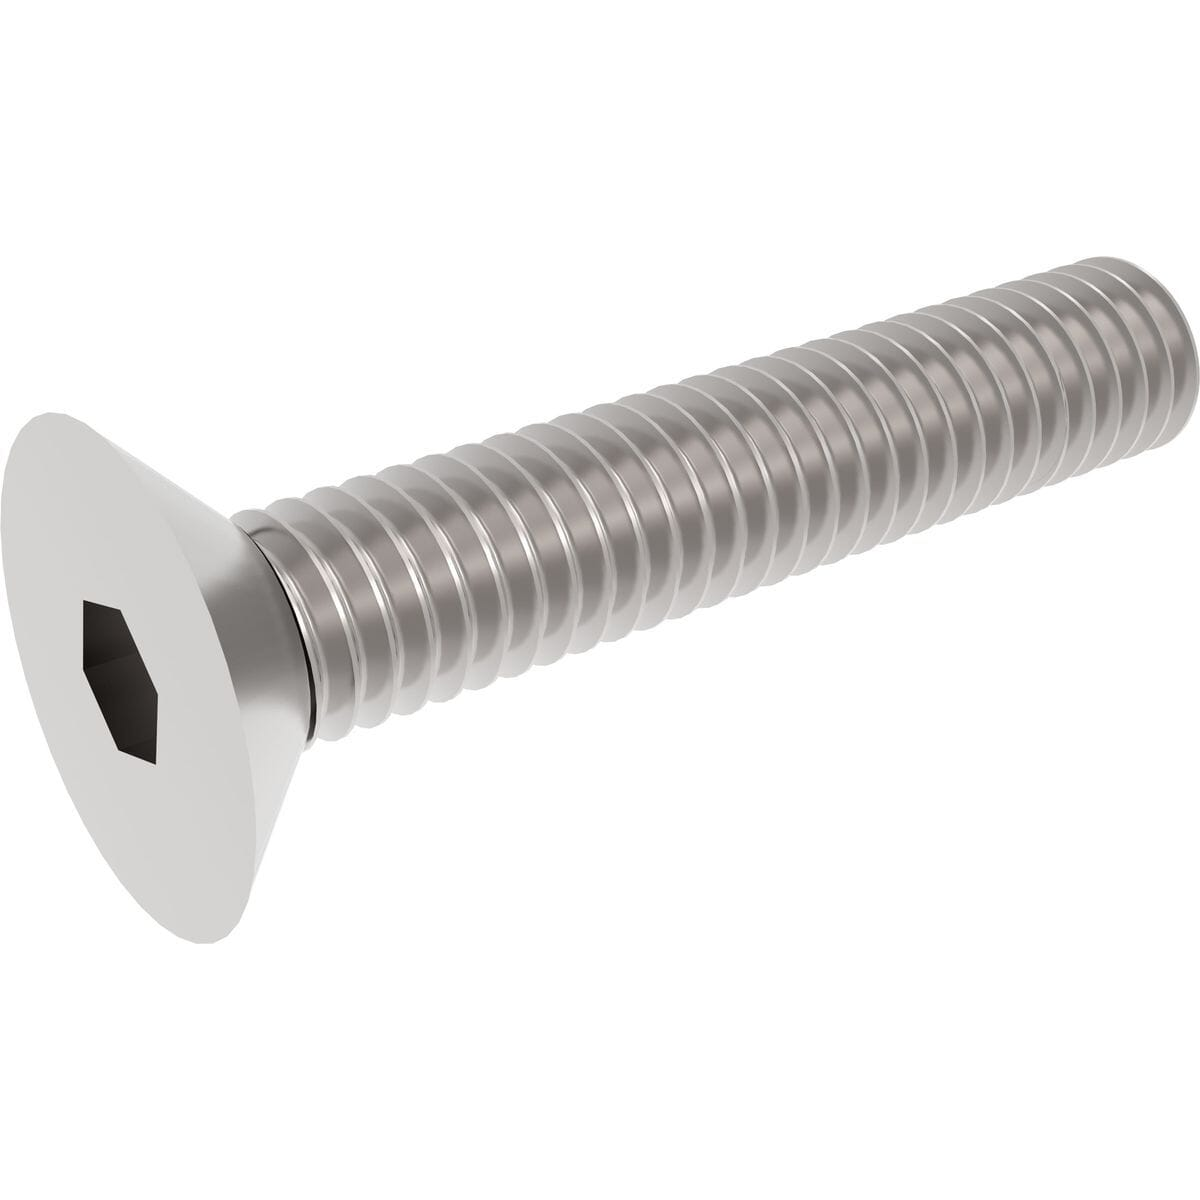 M5 x 40mm Socket Countersunk Screws (ISO 10642) - Stainless Steel (A2)